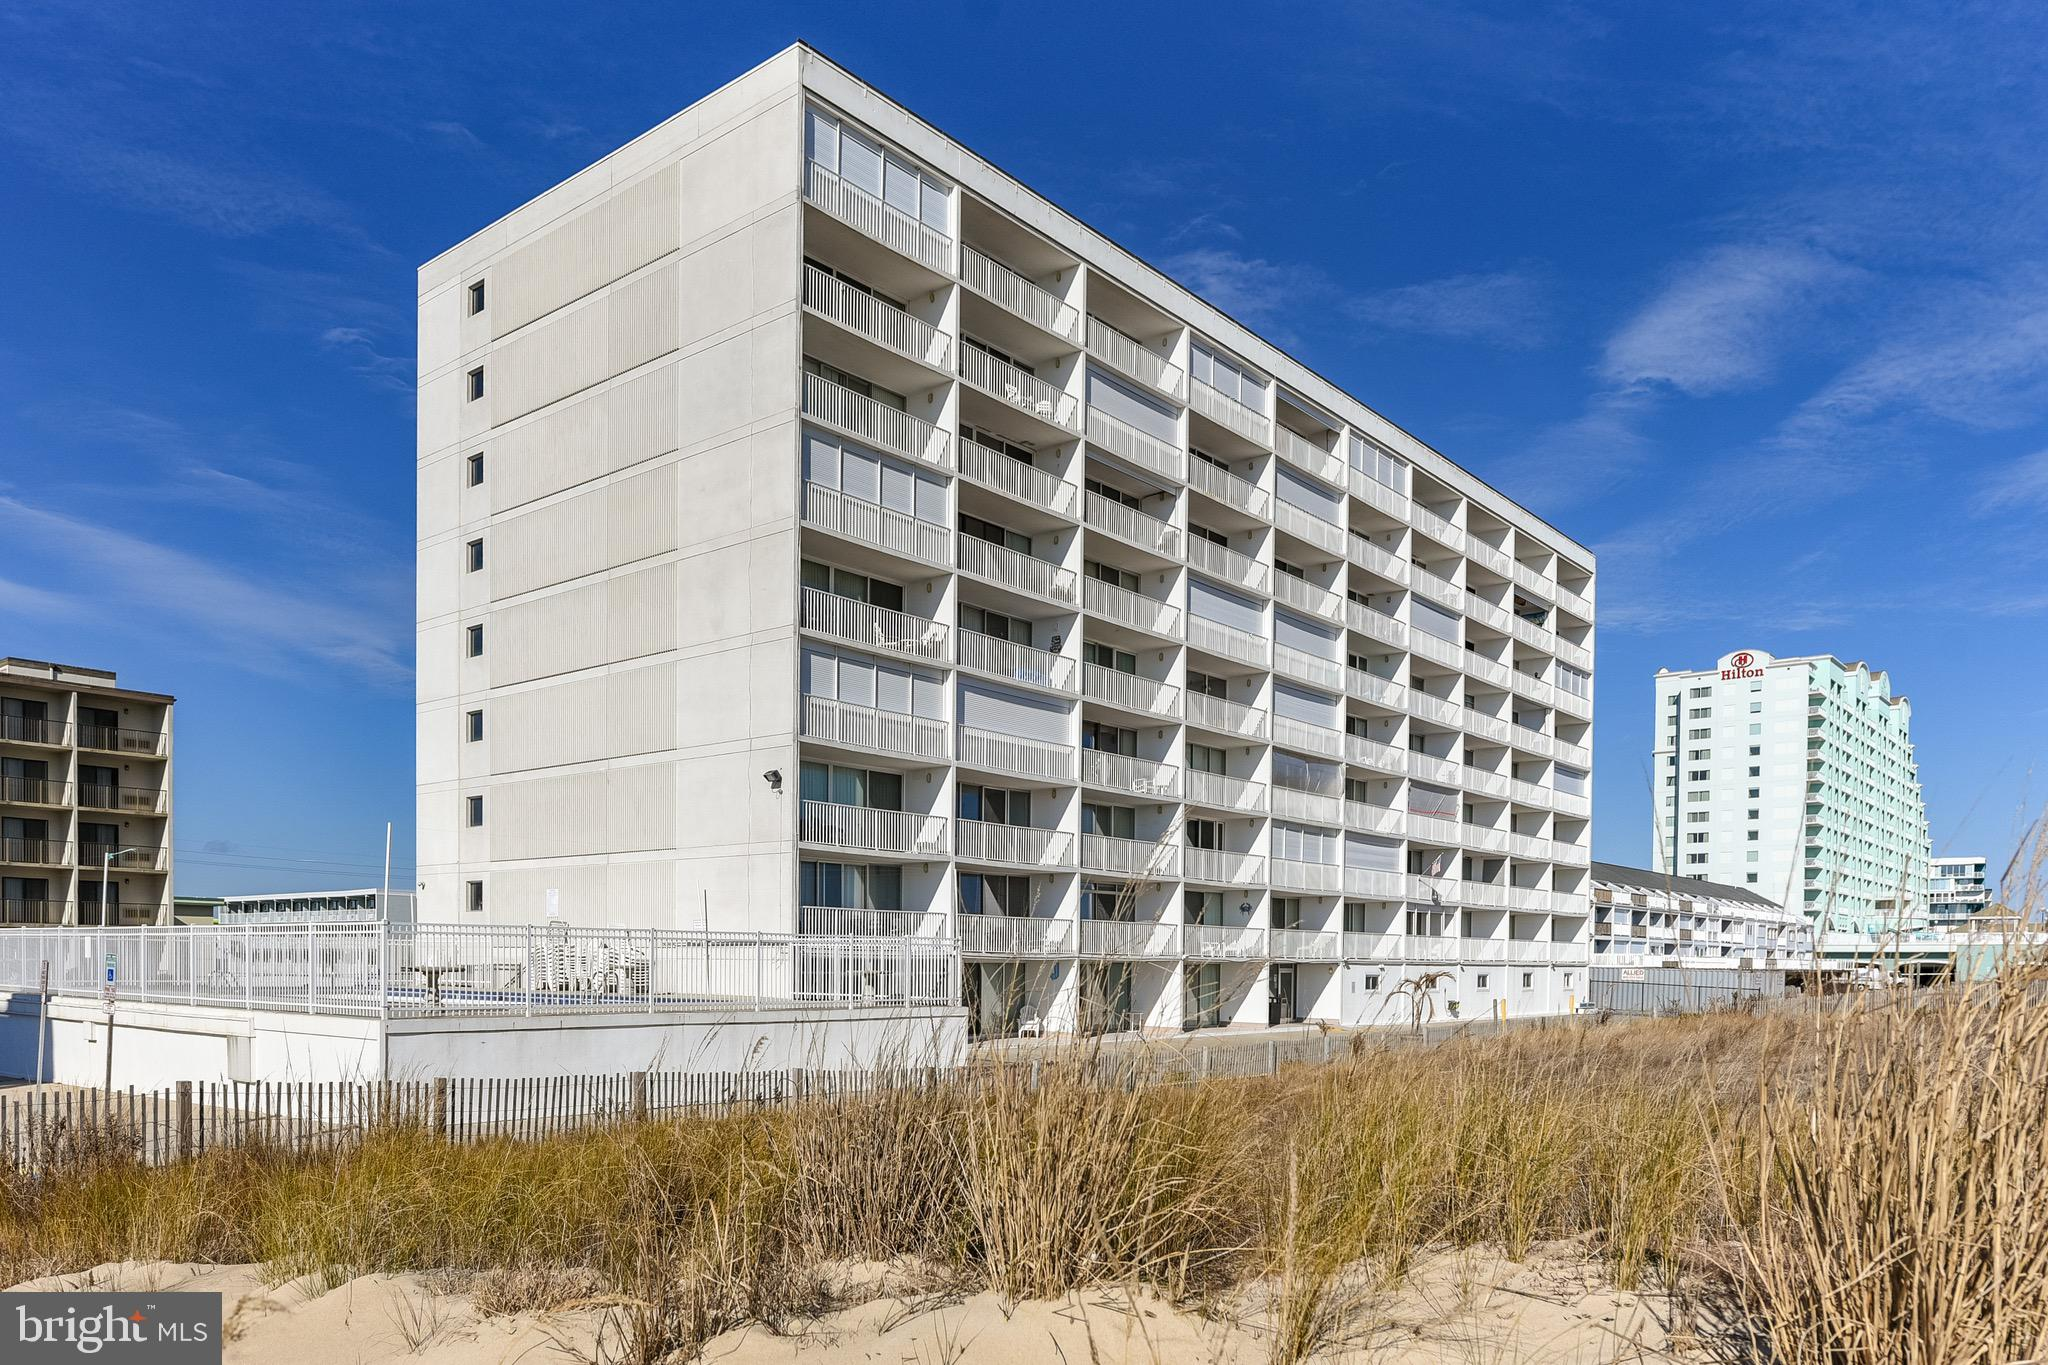 Top Floor Unit in Prime, Direct Ocean Front Building Featuring a One Bedroom, One and Half Baths in Sea Gate Condominium, Unit is in Excellent Condition, Ocean Front Pool, Secure Lobby, Excellent Association, 2 Blocks north of the World Famous Boardwalk, Many Ocean City  Attractions within walking distance, Sliding  Glass Door replaced in the last few years, Hurricane Shutters, this unit features an extra 1/2 bath not available some of other units, Excellent Rental Potential, Sold Fully Furnished. Great Place to escaped too and enjoy the sounds of the Ocean. Summer is Coming.......